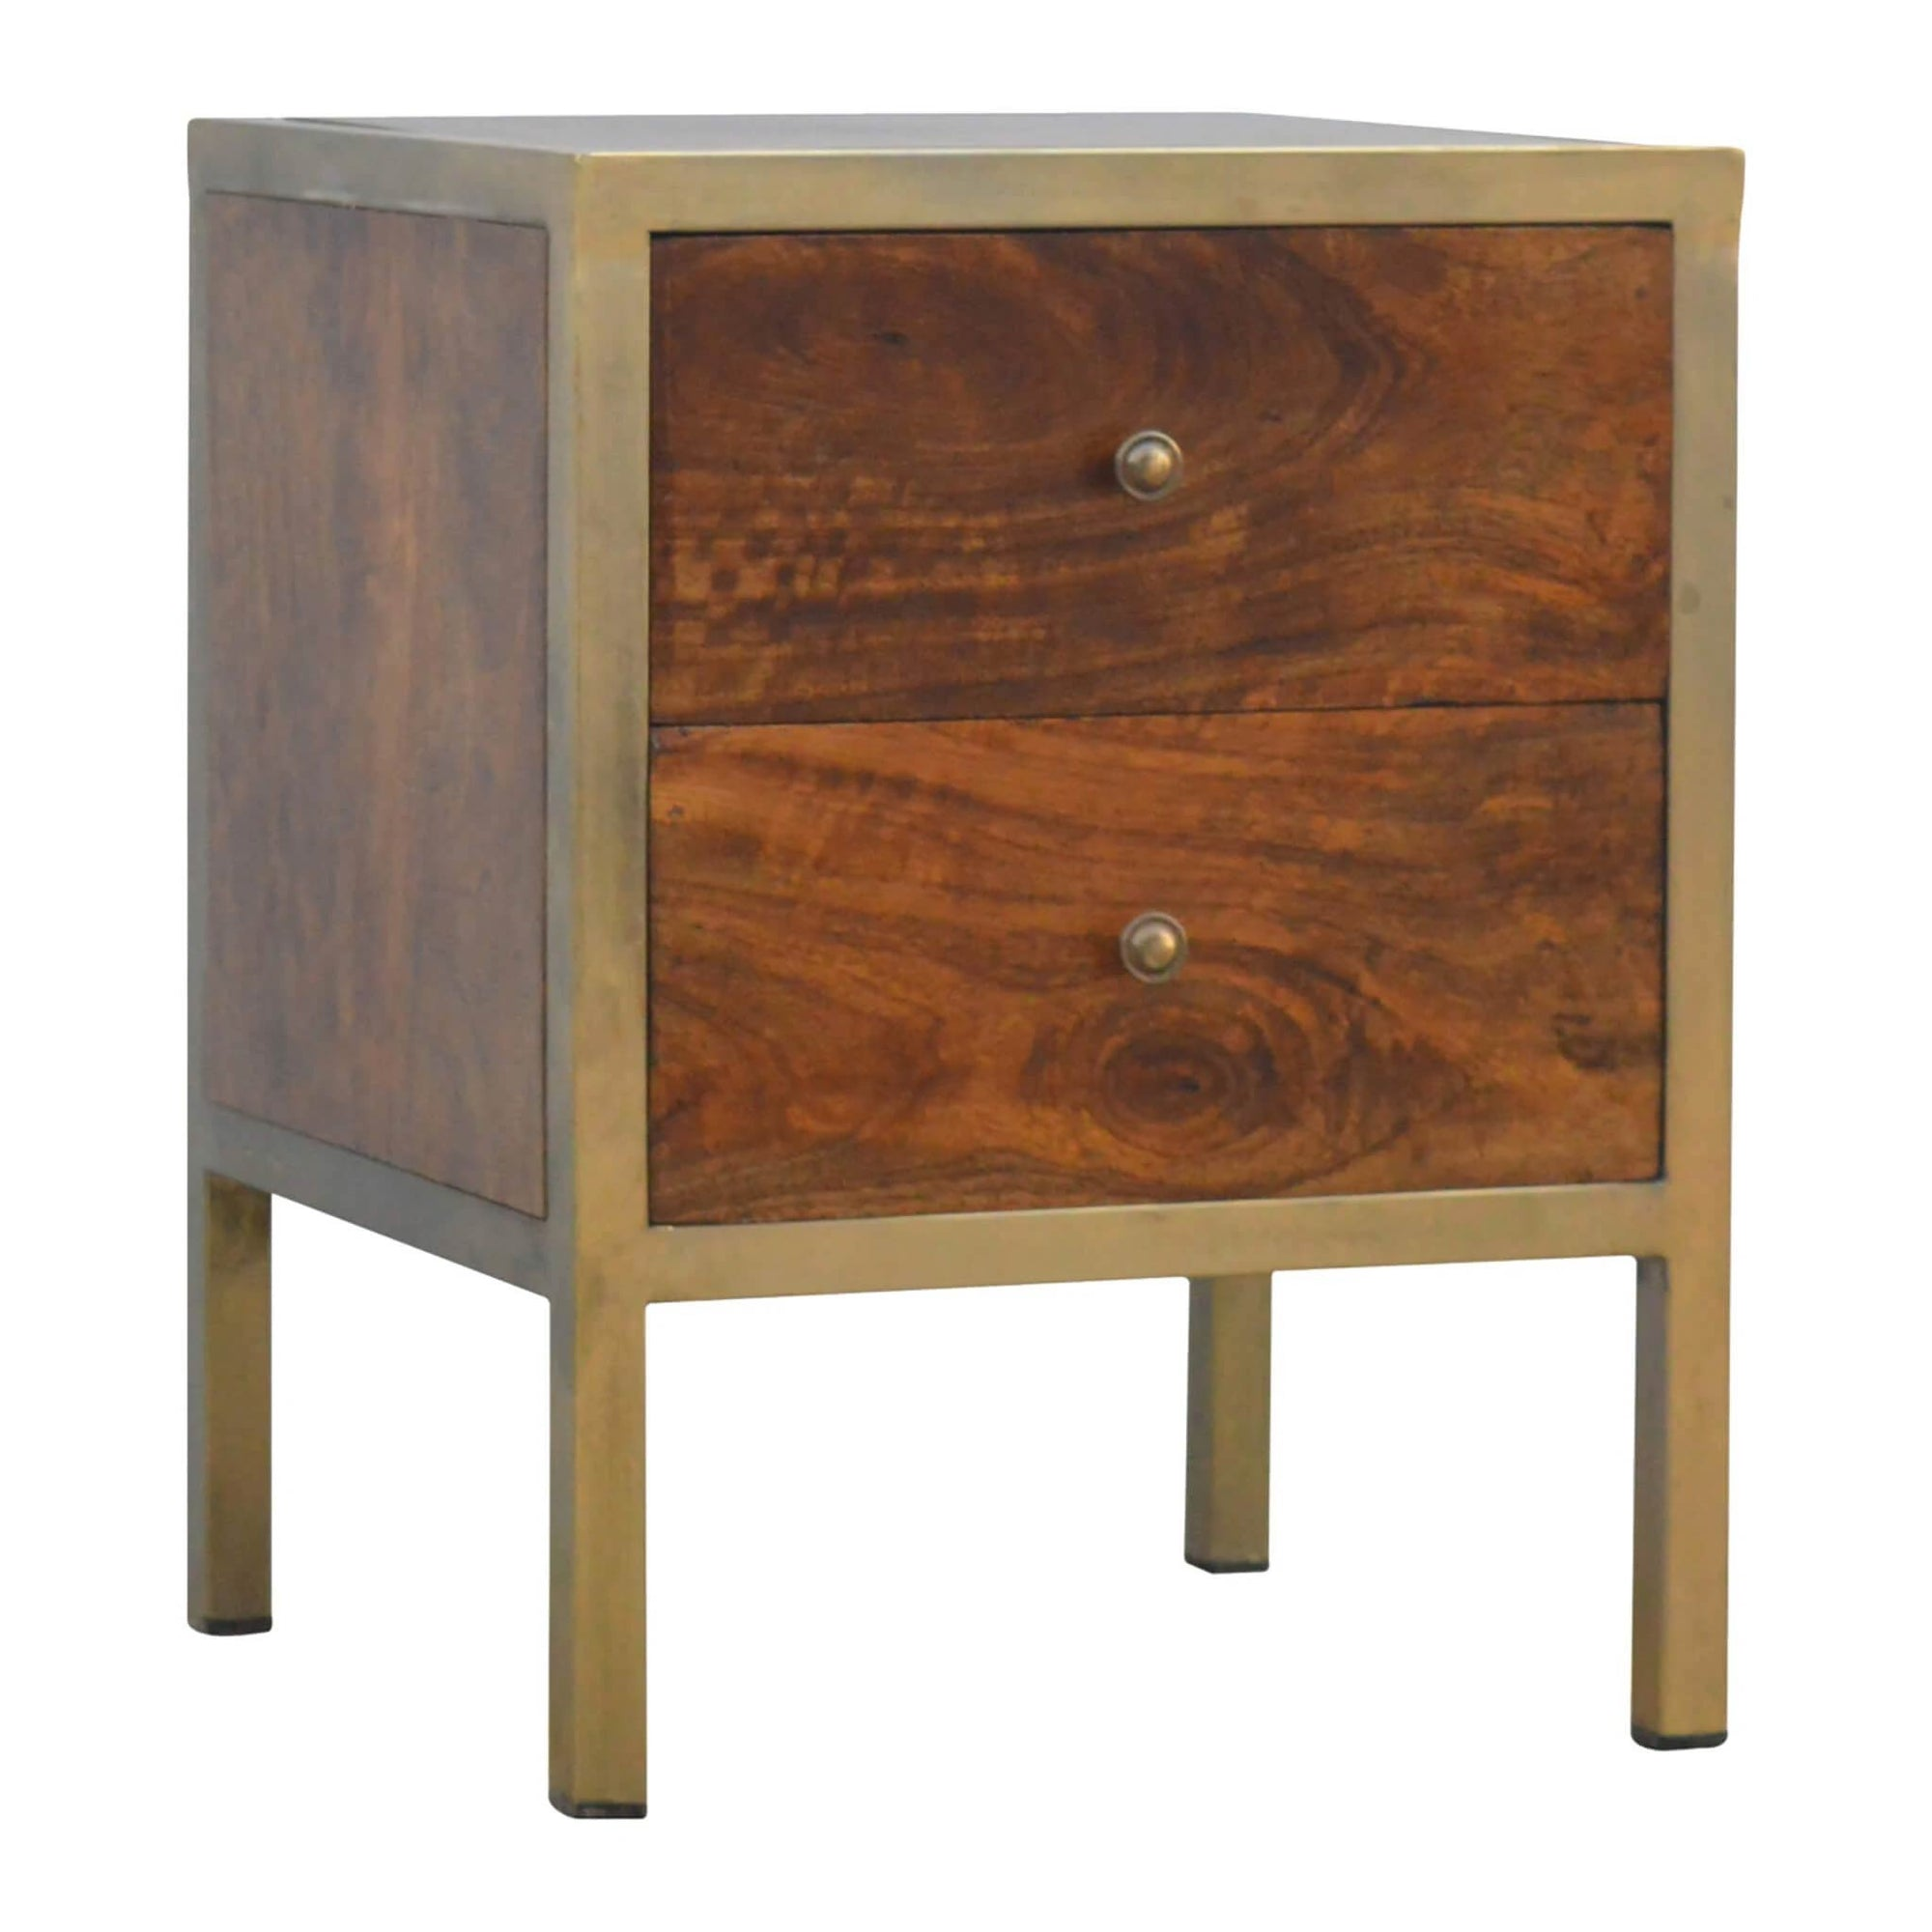 Artisan Iron Frame Bedside Side Table with Drawers by Roseland Furniture